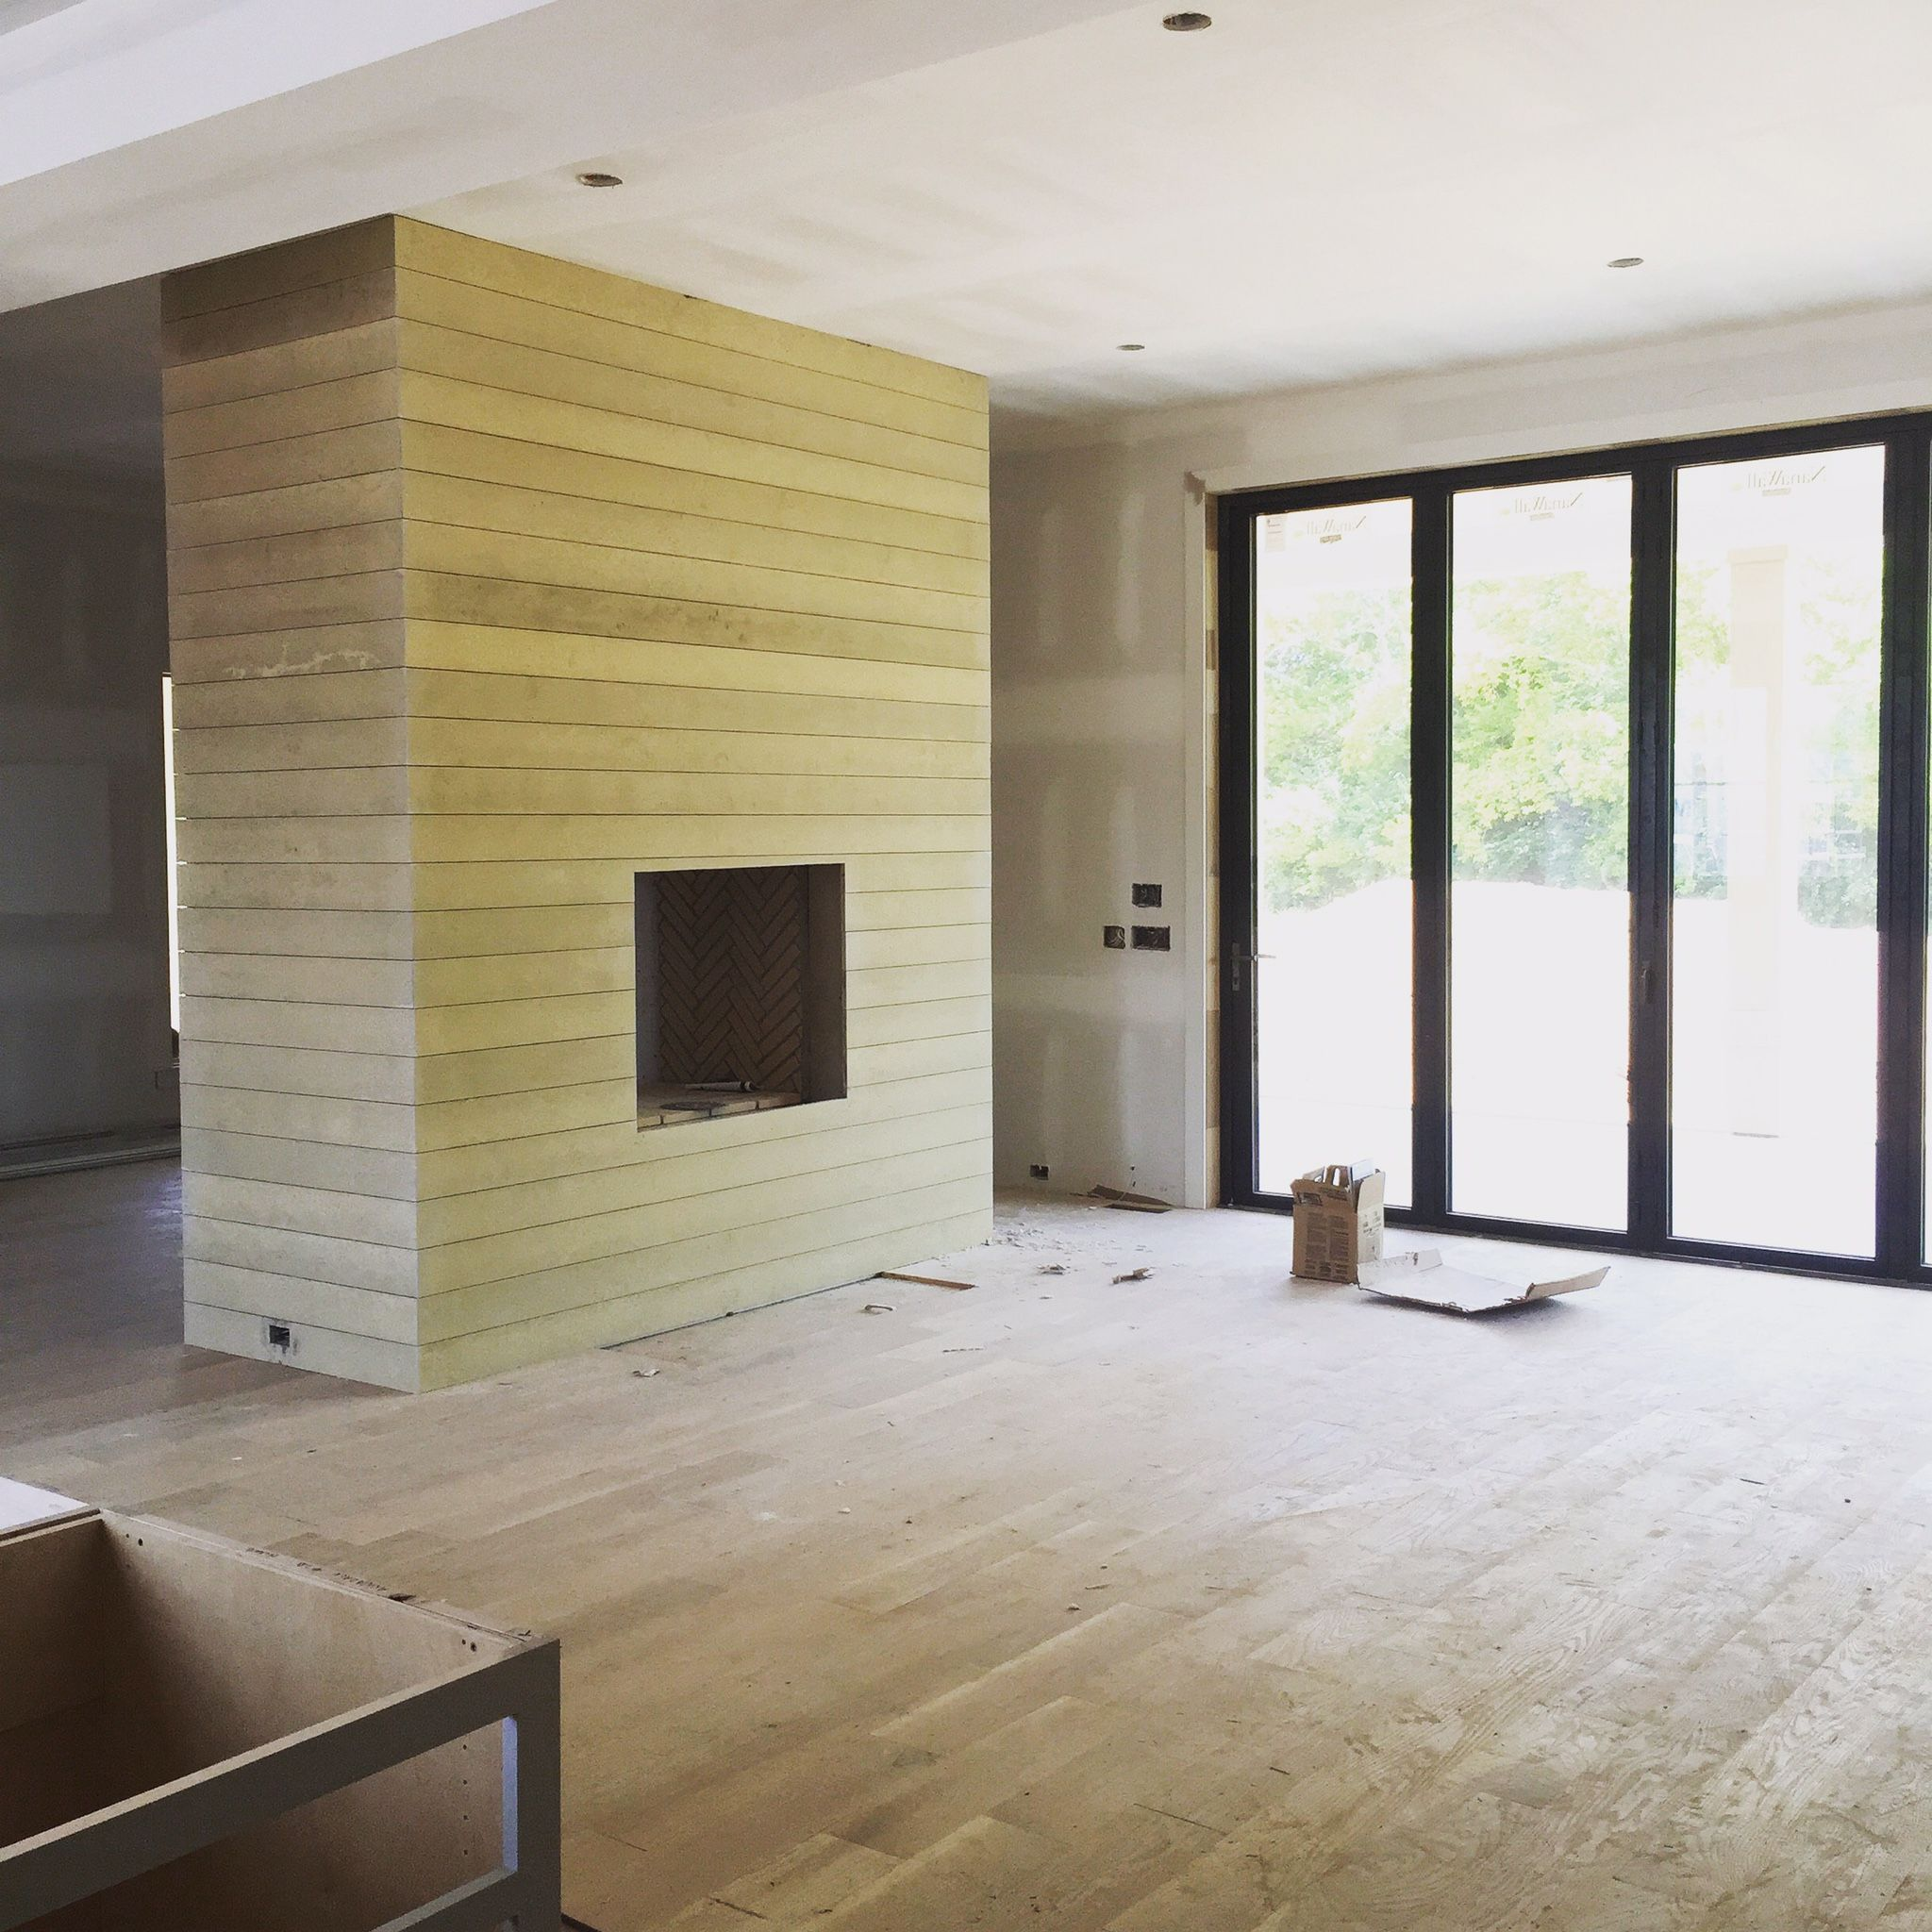 Cement Board For Fireplace Part - 21: Cement Board Shiplap. How-to With Suggestions.